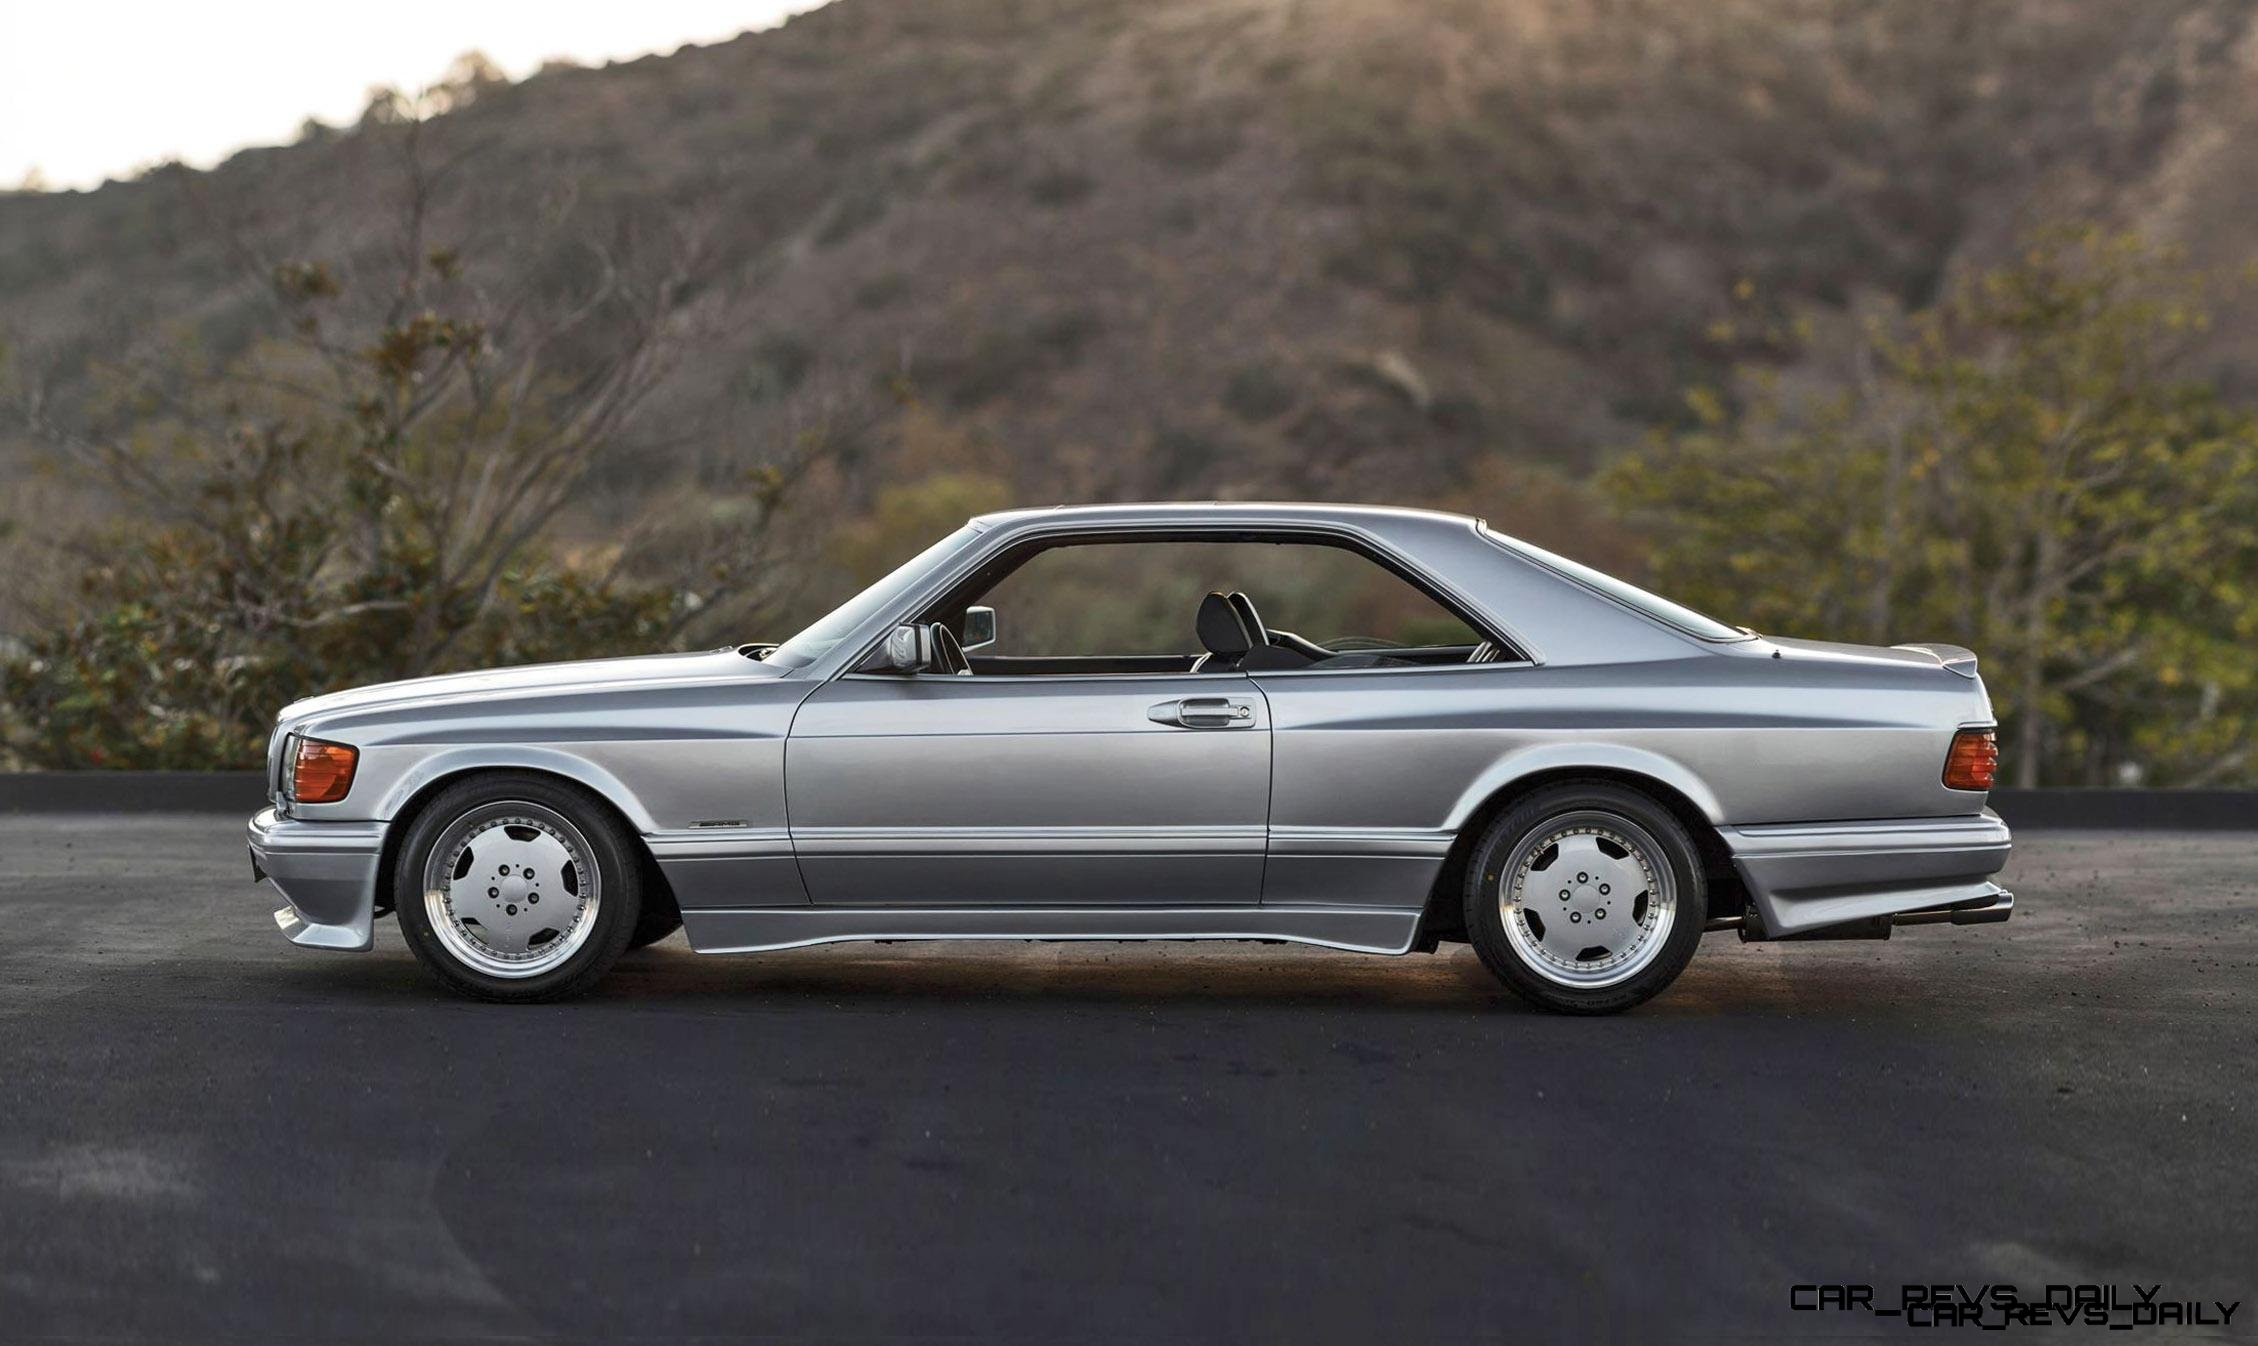 1989 mercedes benz 560sec 6 0 amg widebody looks ready for for Mercedes benz 560sec for sale